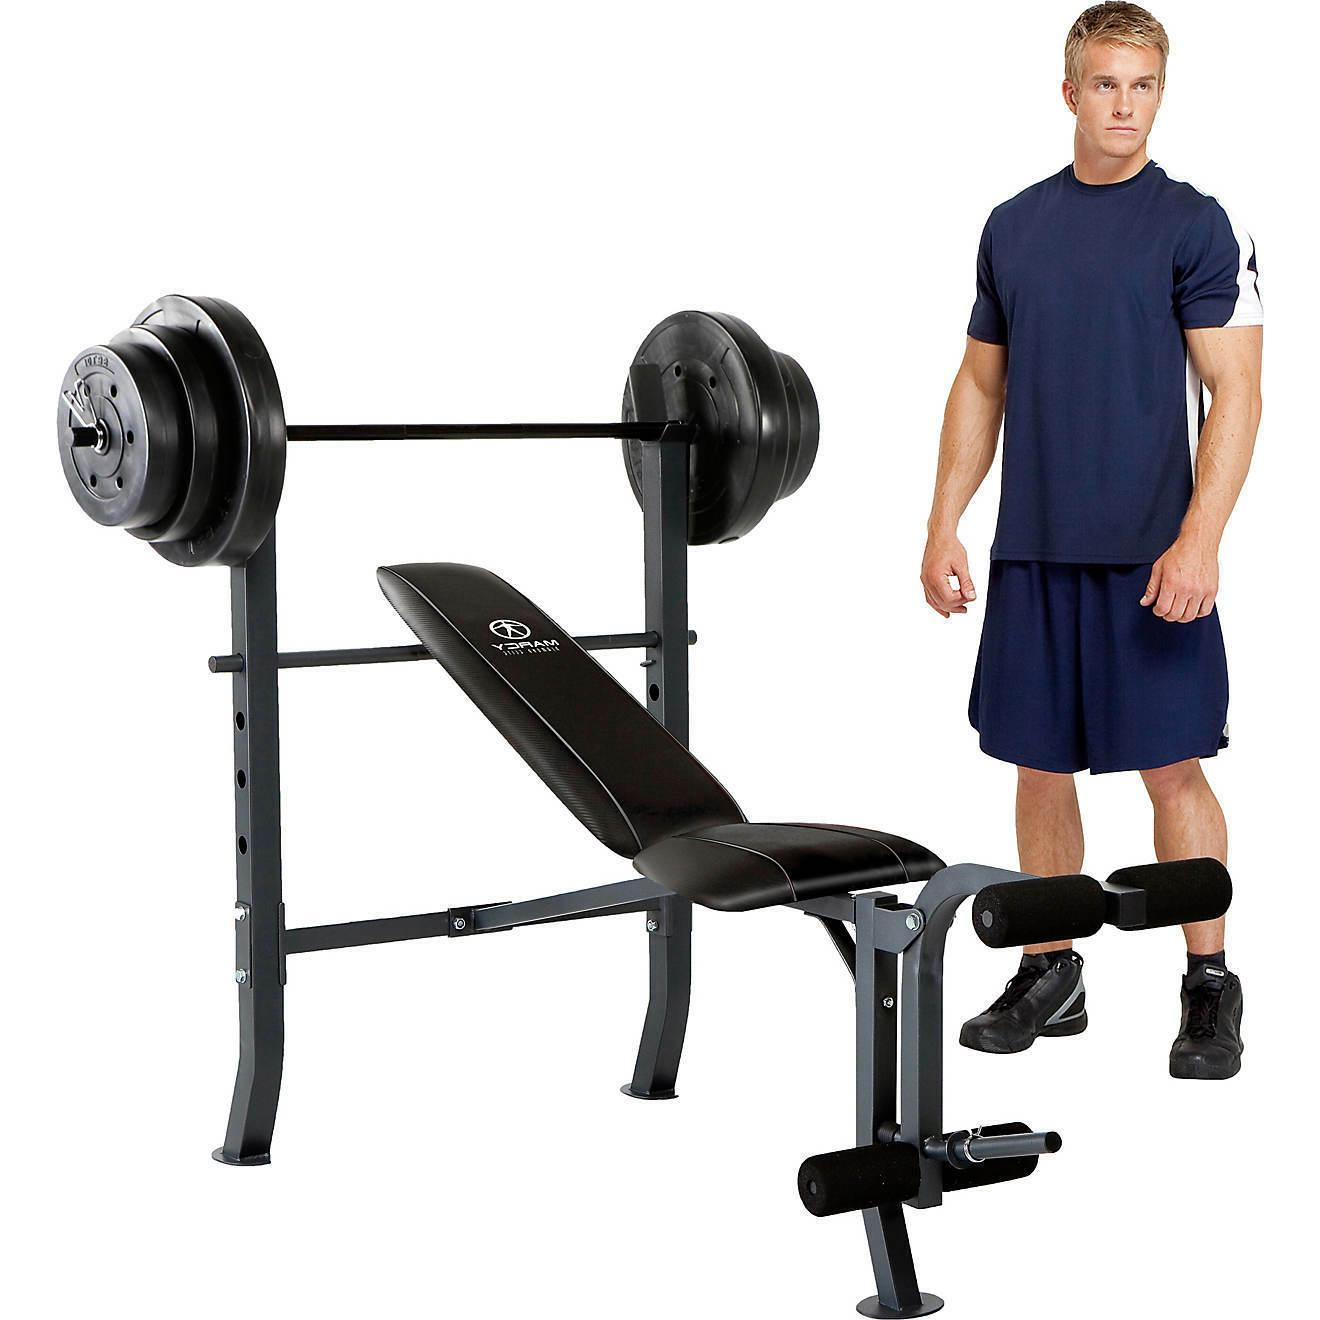 Marcy Standard Adjustable Weight Bench with 100lb Weight Set